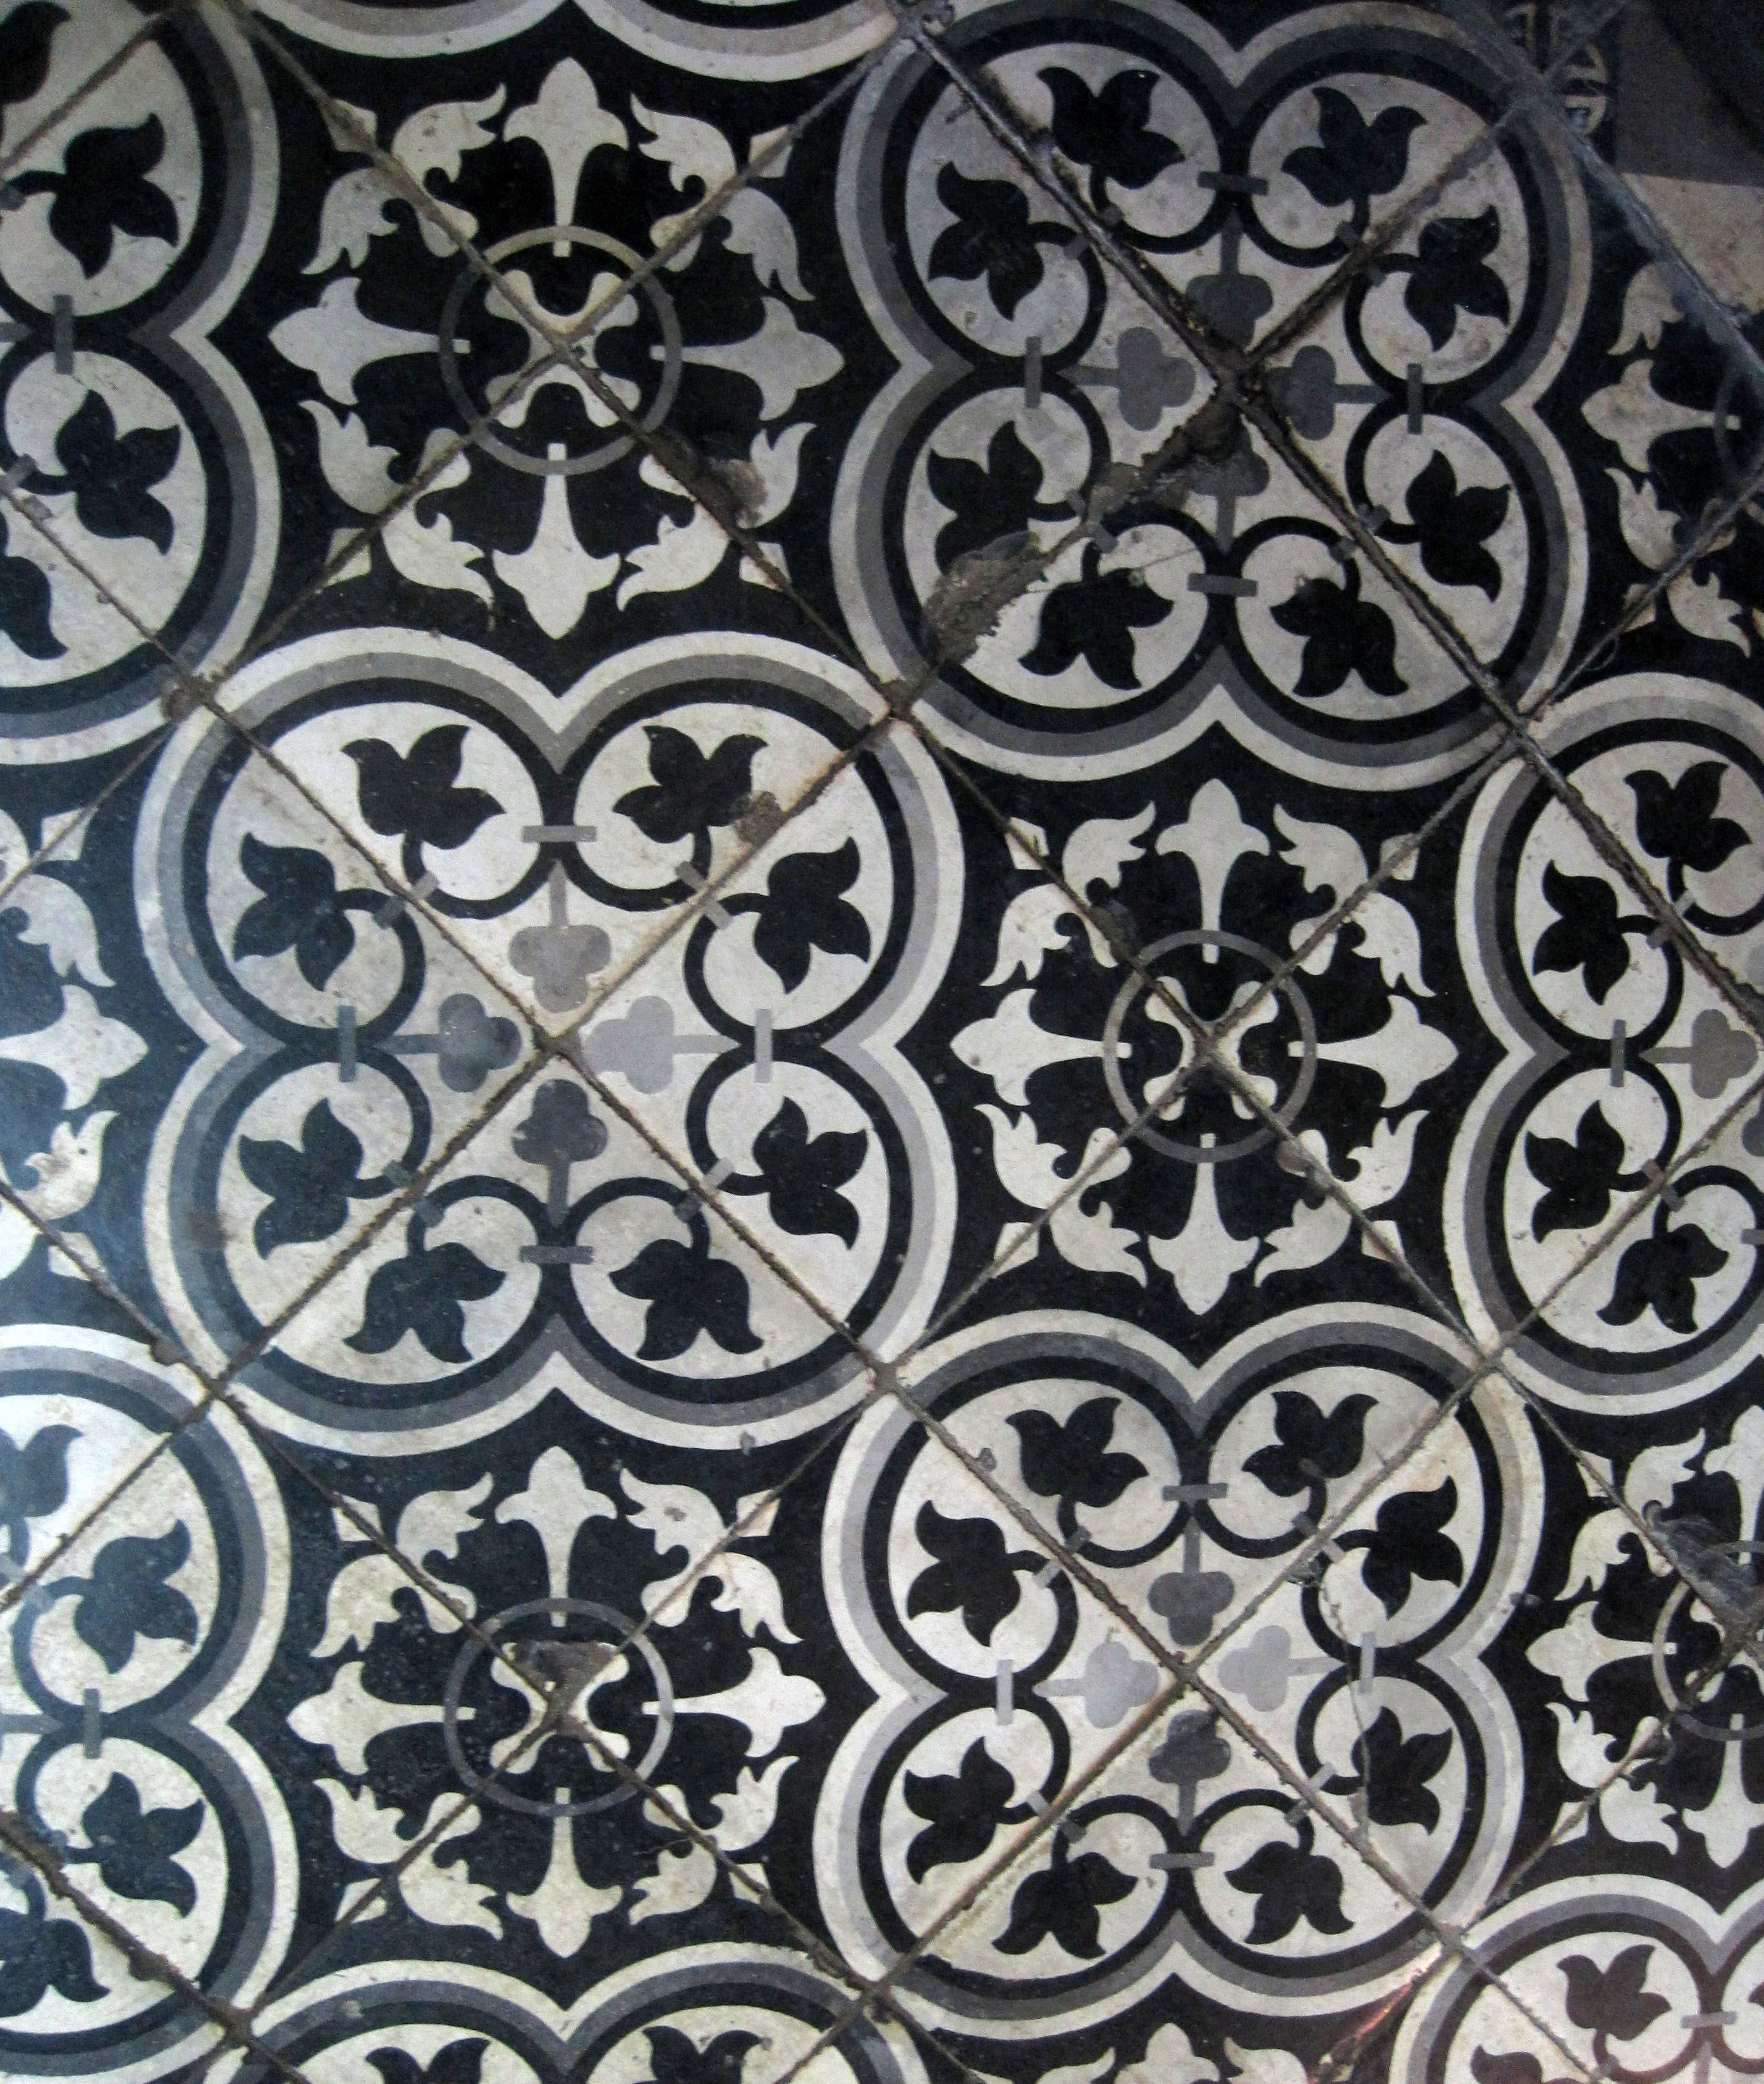 Tile floor hoi an vietnam obviously a different color for you tile floor hoi an vietnam handmade tiles can be colour coordinated and customized re shape texture pattern etc by ceramic design studios dailygadgetfo Images